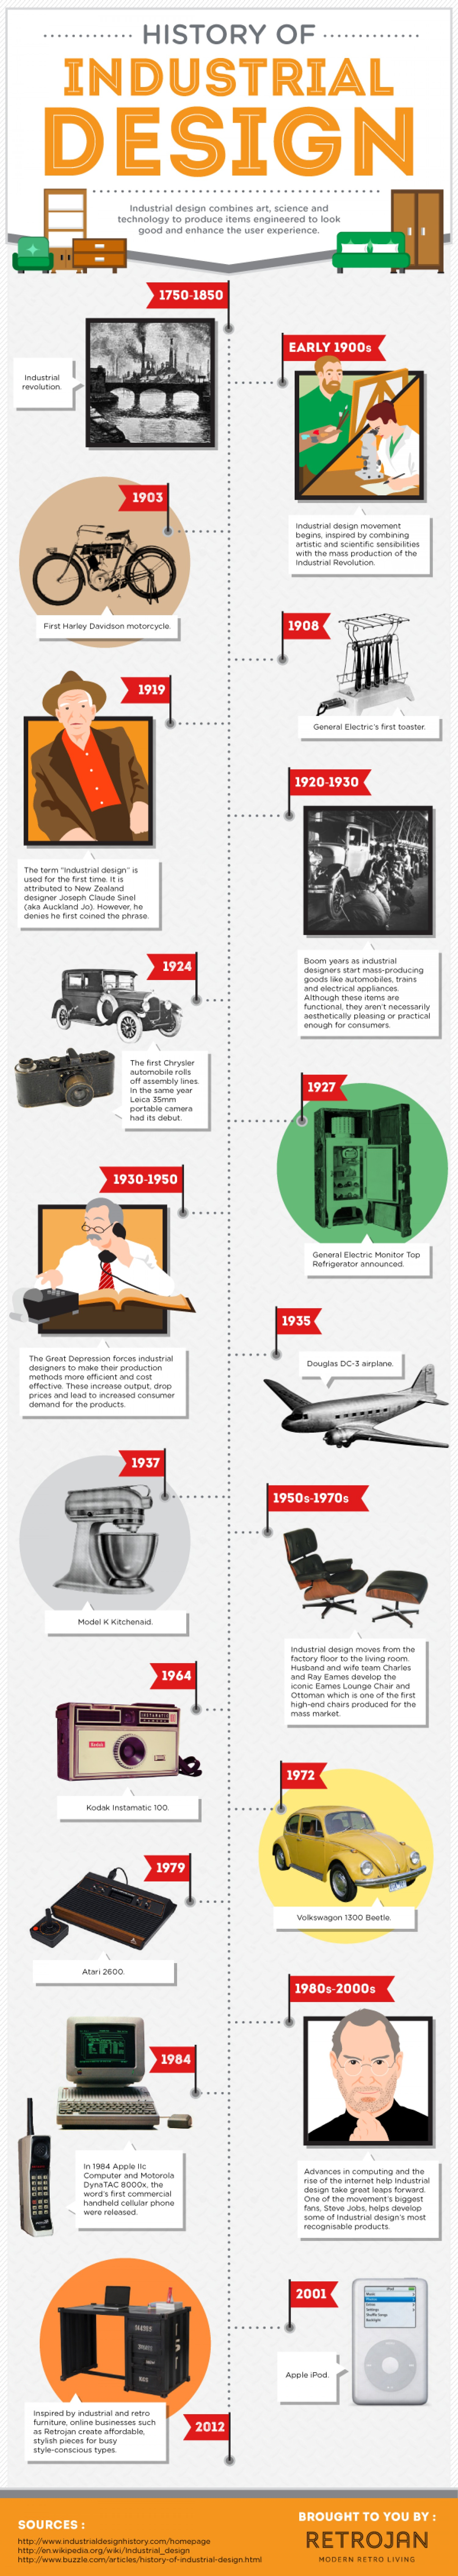 The History of Industrial Design Infographic | Industrial ...